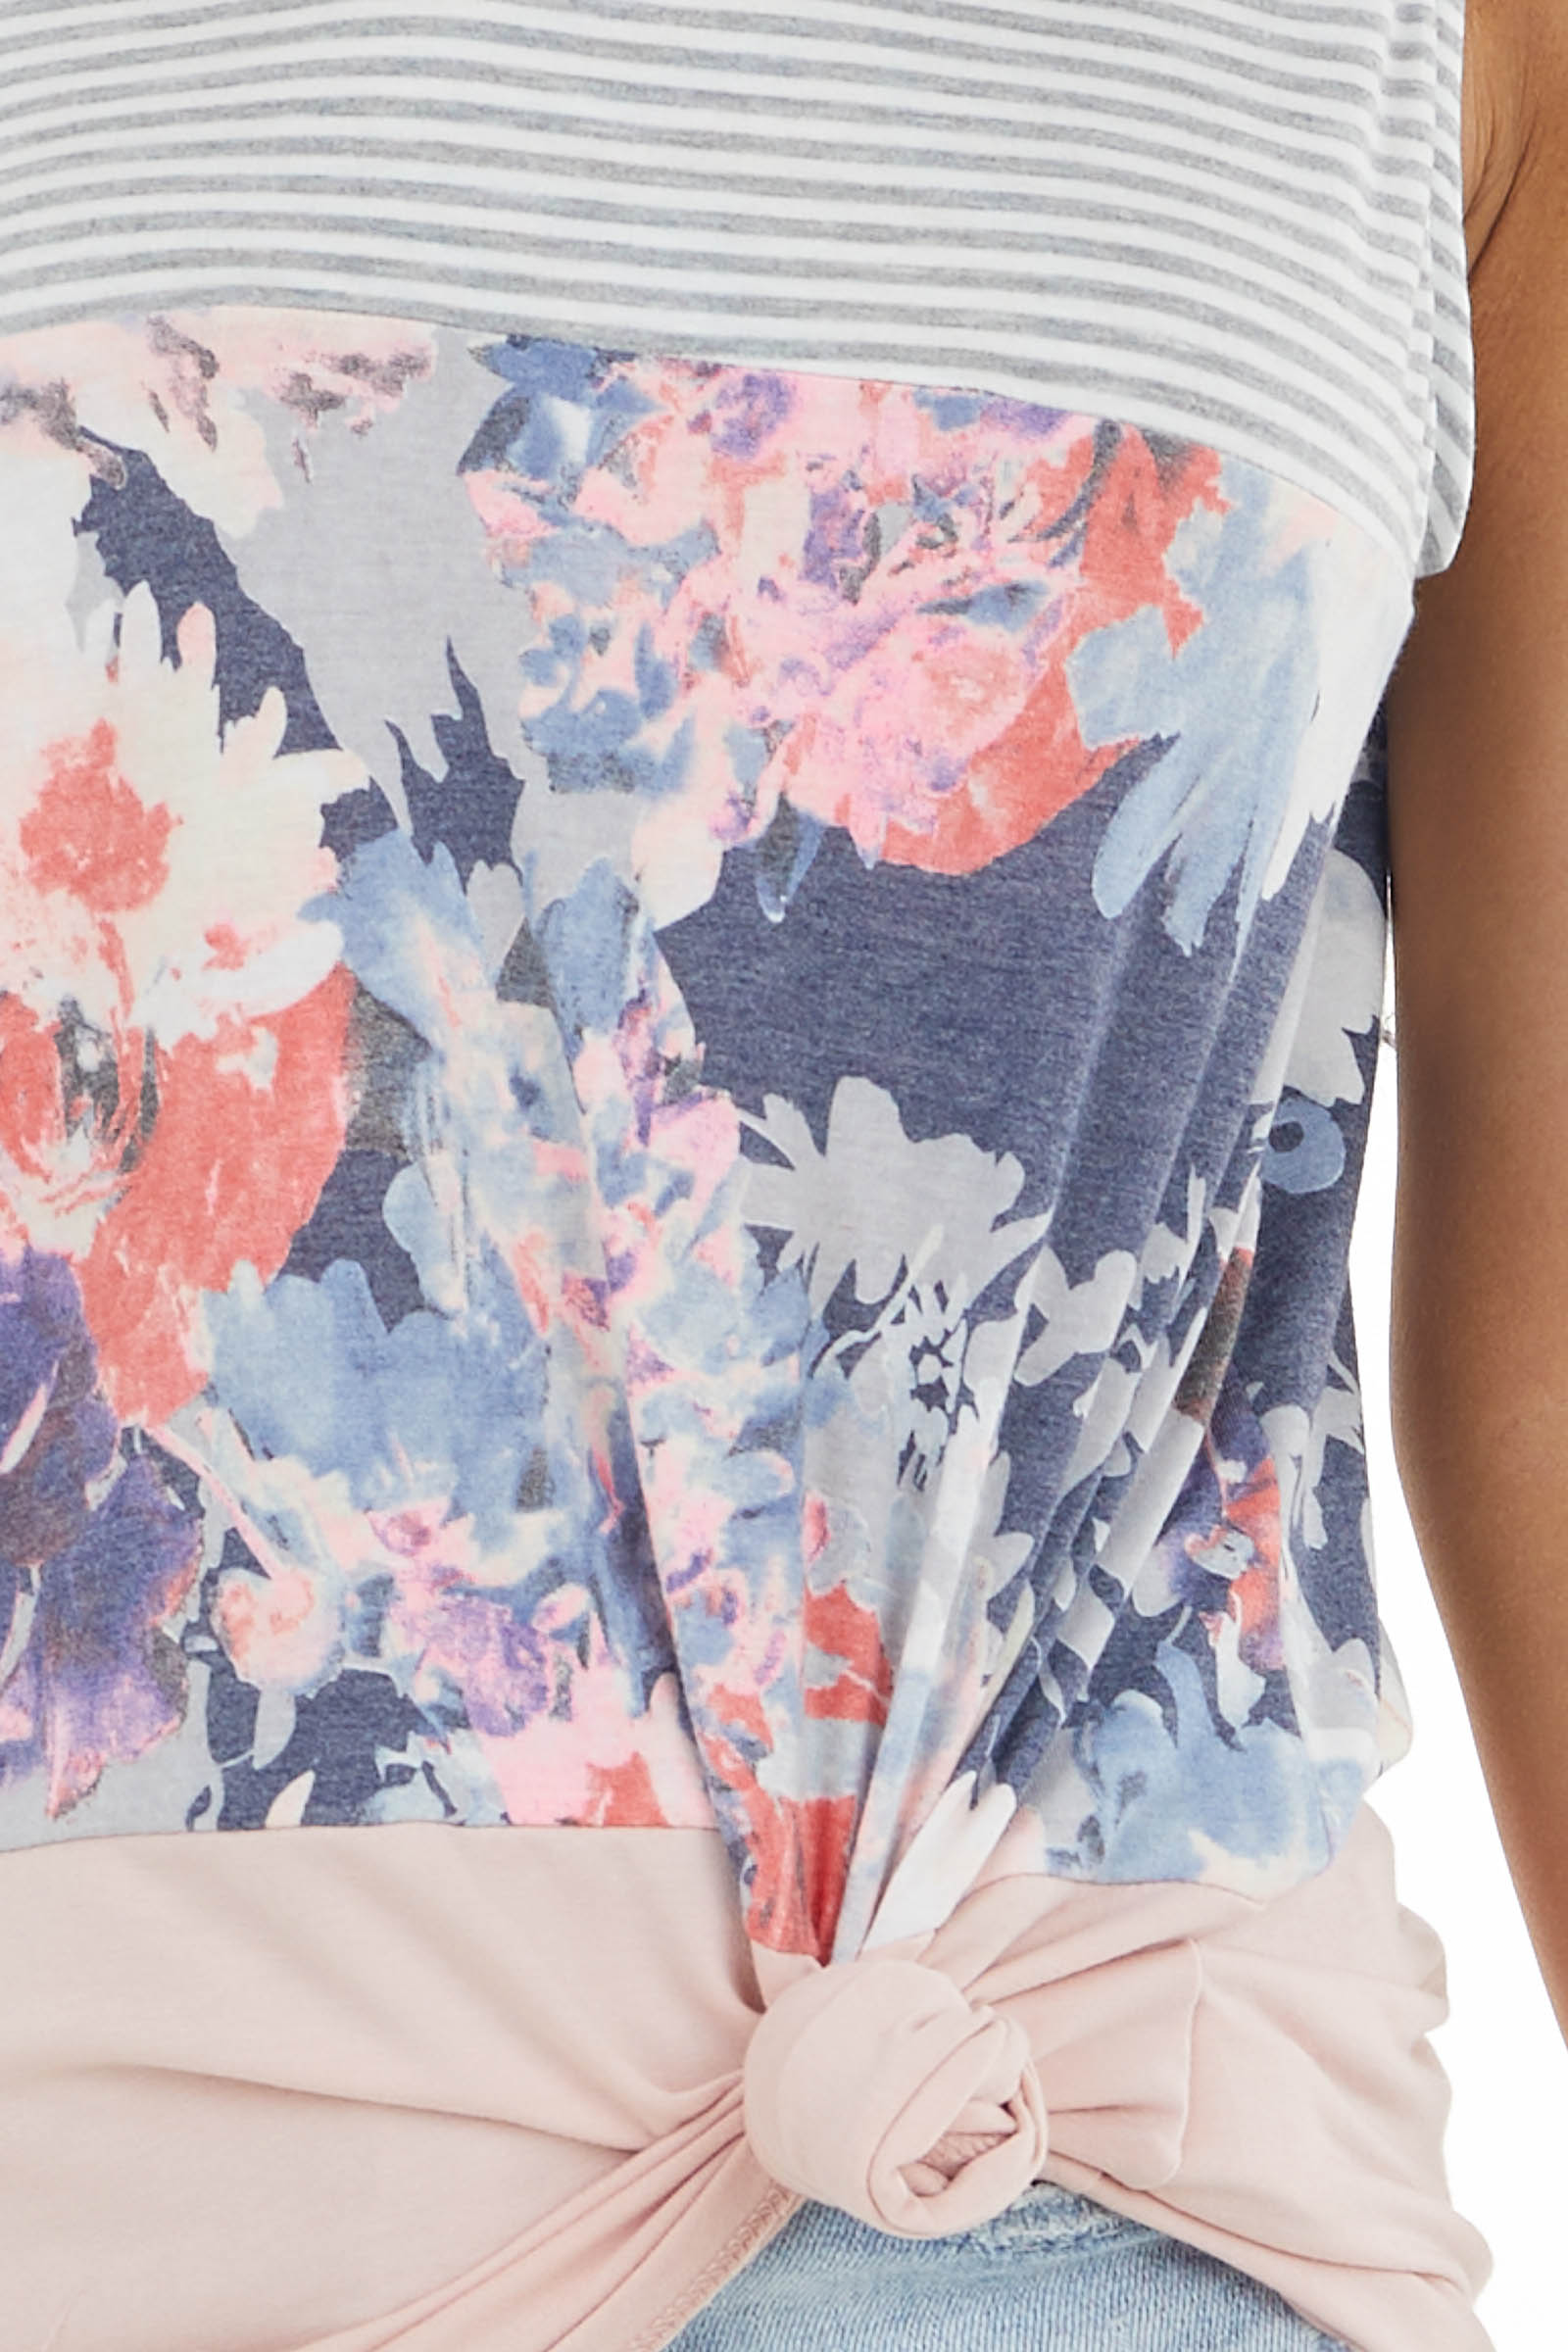 Dusty Blush Sleeveless Knit Top with Contrasting Patterns